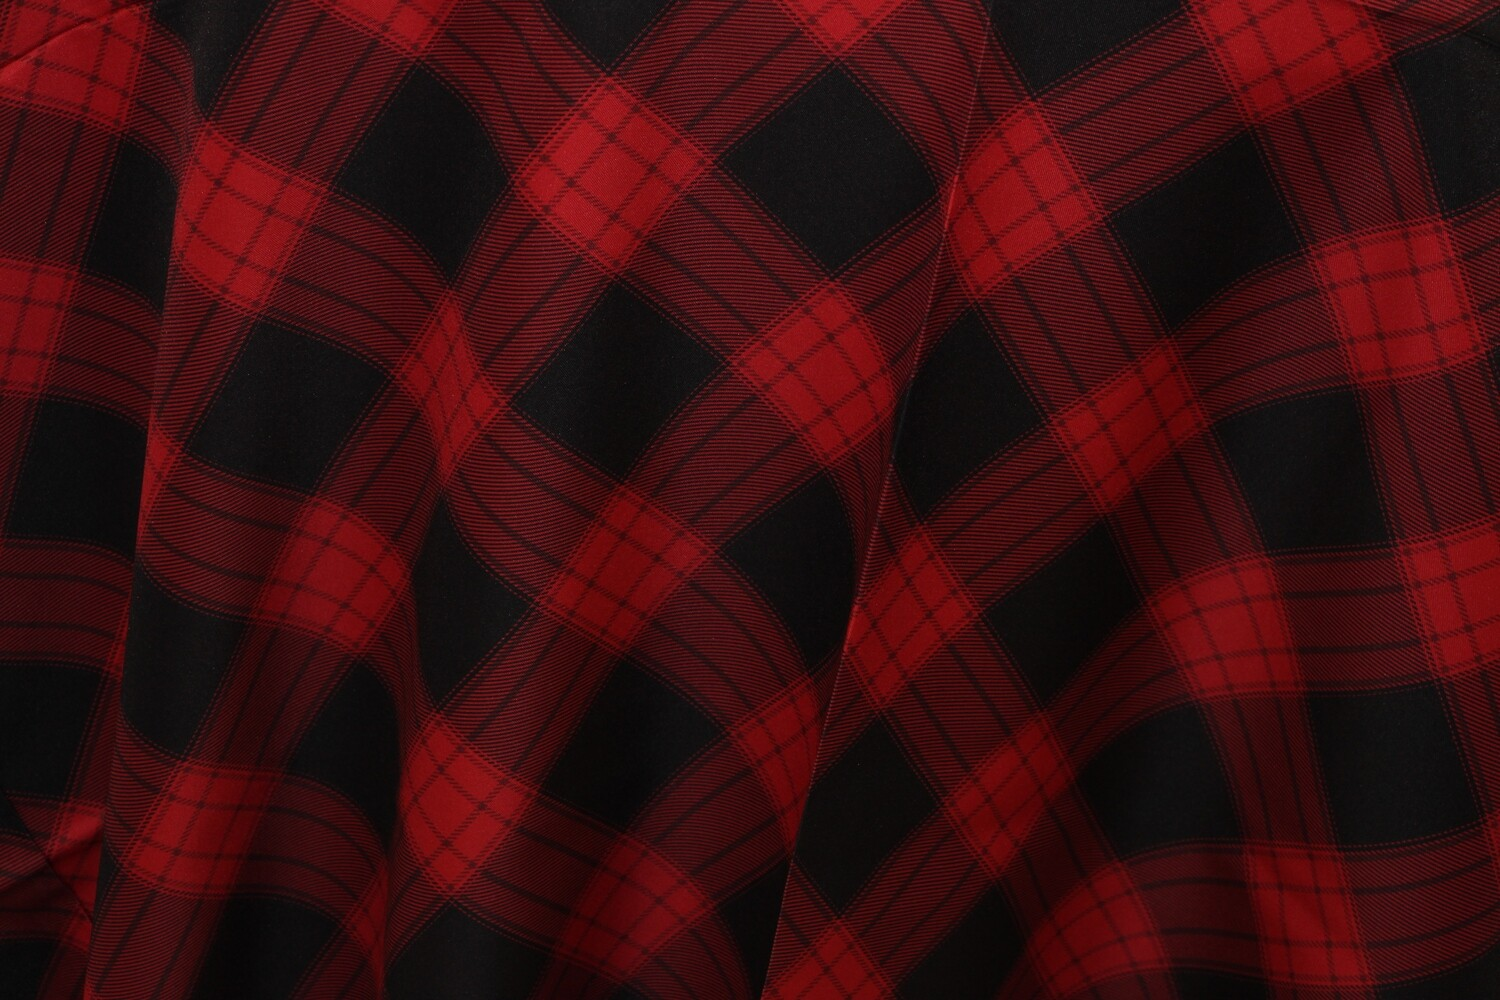 """Nappe En Polyester à carreaux noirs et rouges 120"""" ronde / Black and Red Buffalo Plaid Polyester 120"""" round Tablecloth"""